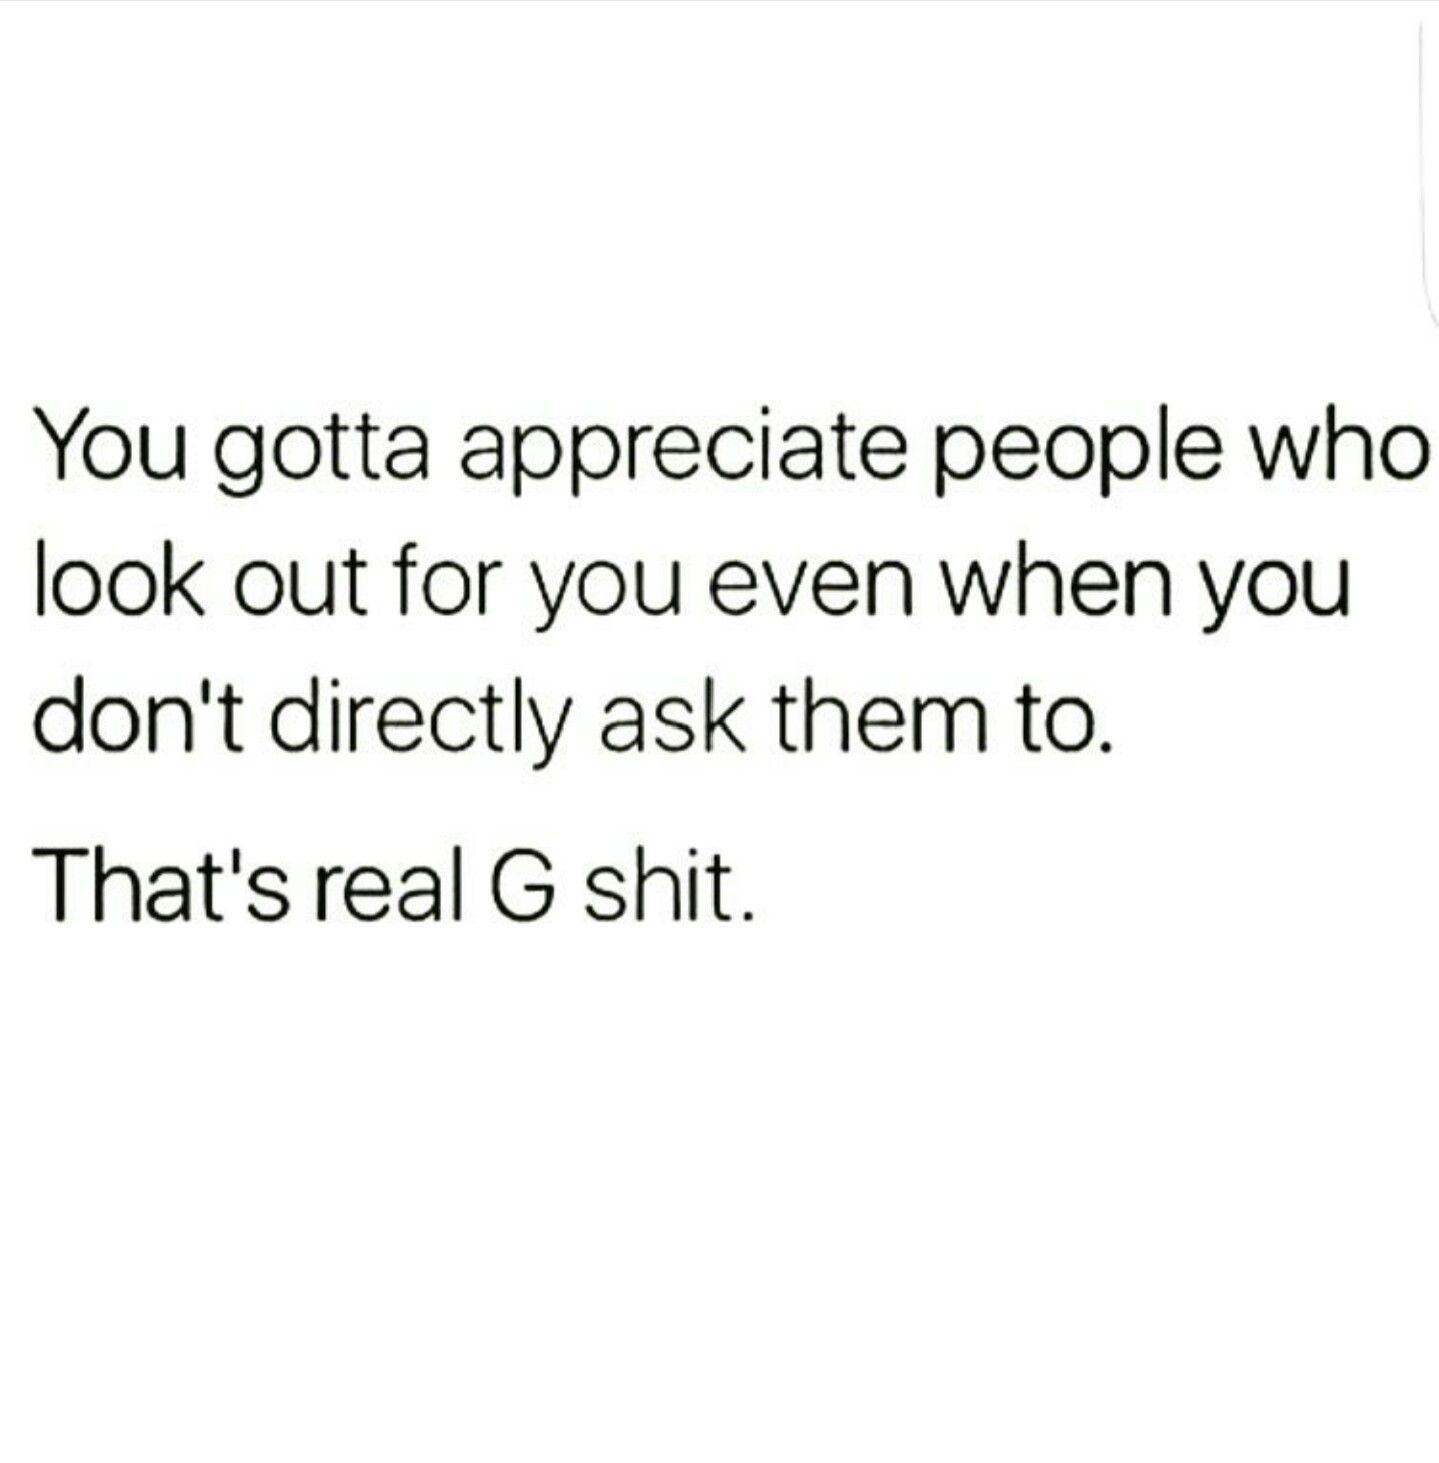 Real G shit  yep! I may not know you for years but I'll have